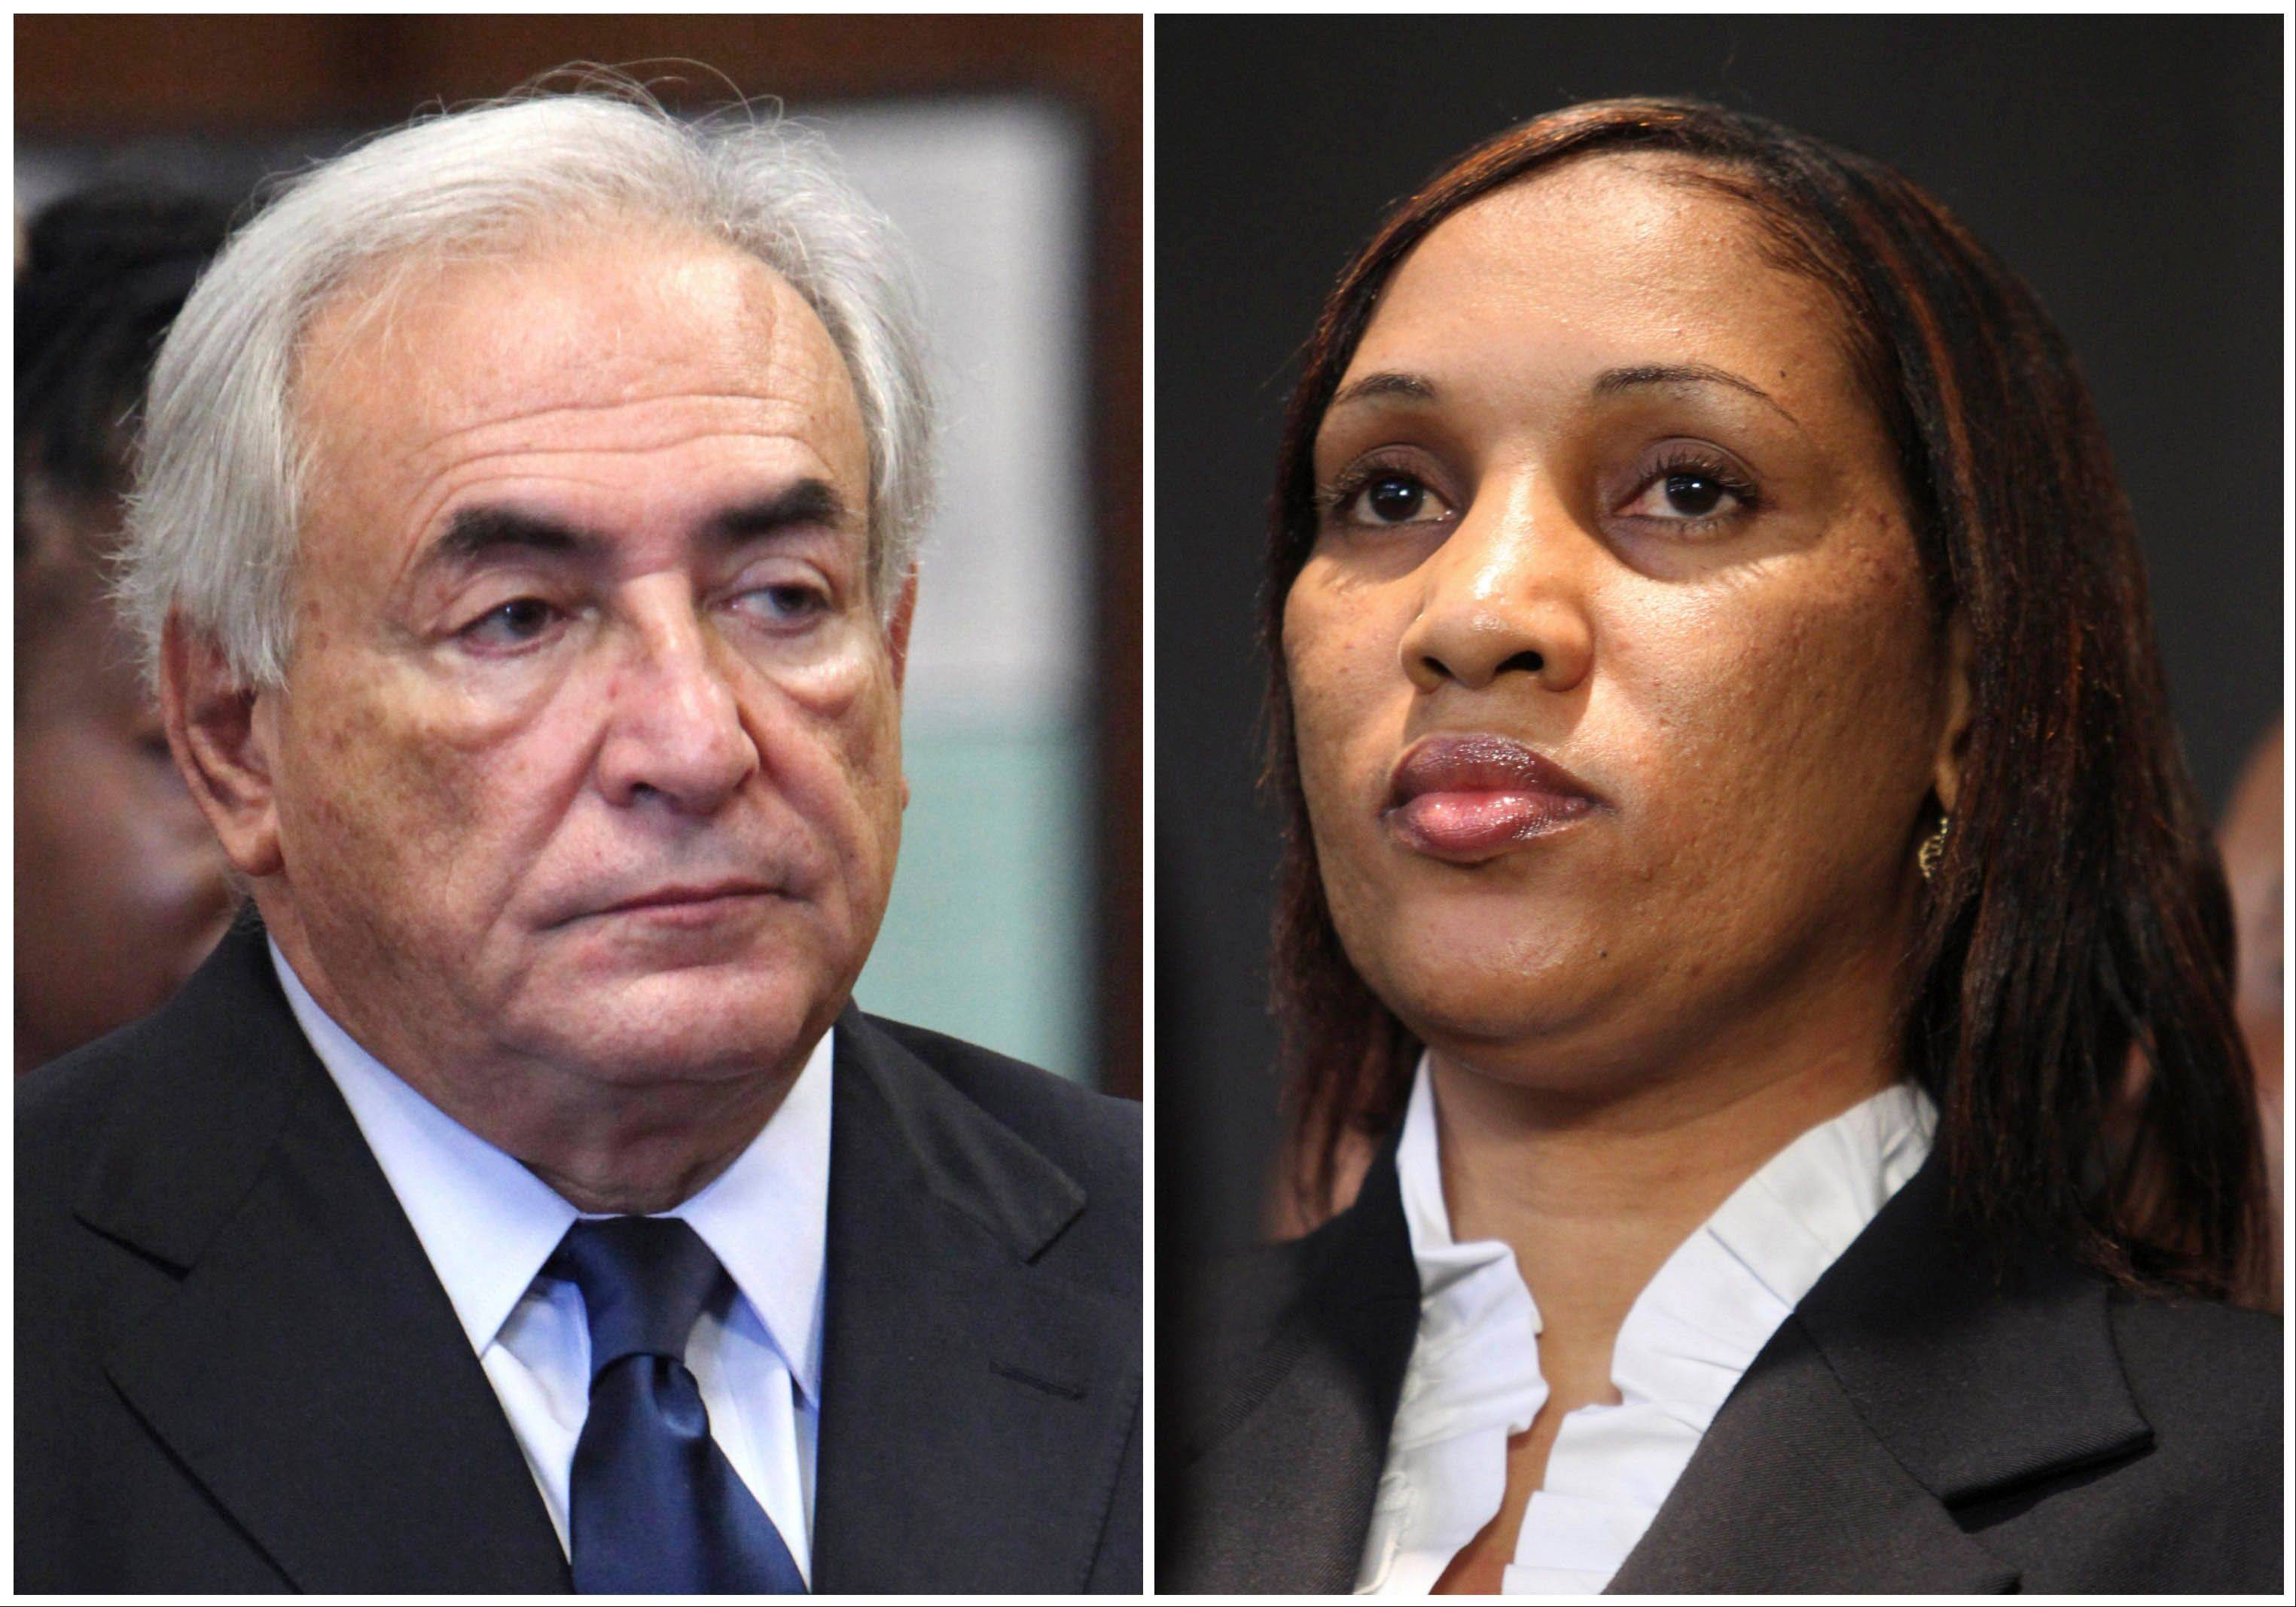 Former International Monetary Fund leader Dominique Strauss-Kahn is seen at left, and Nafissatou Diallo is seen at right. Diallo�s sexual assault lawsuit against the former IMF leader could wrap up as soon as Monday in a quiet deal.